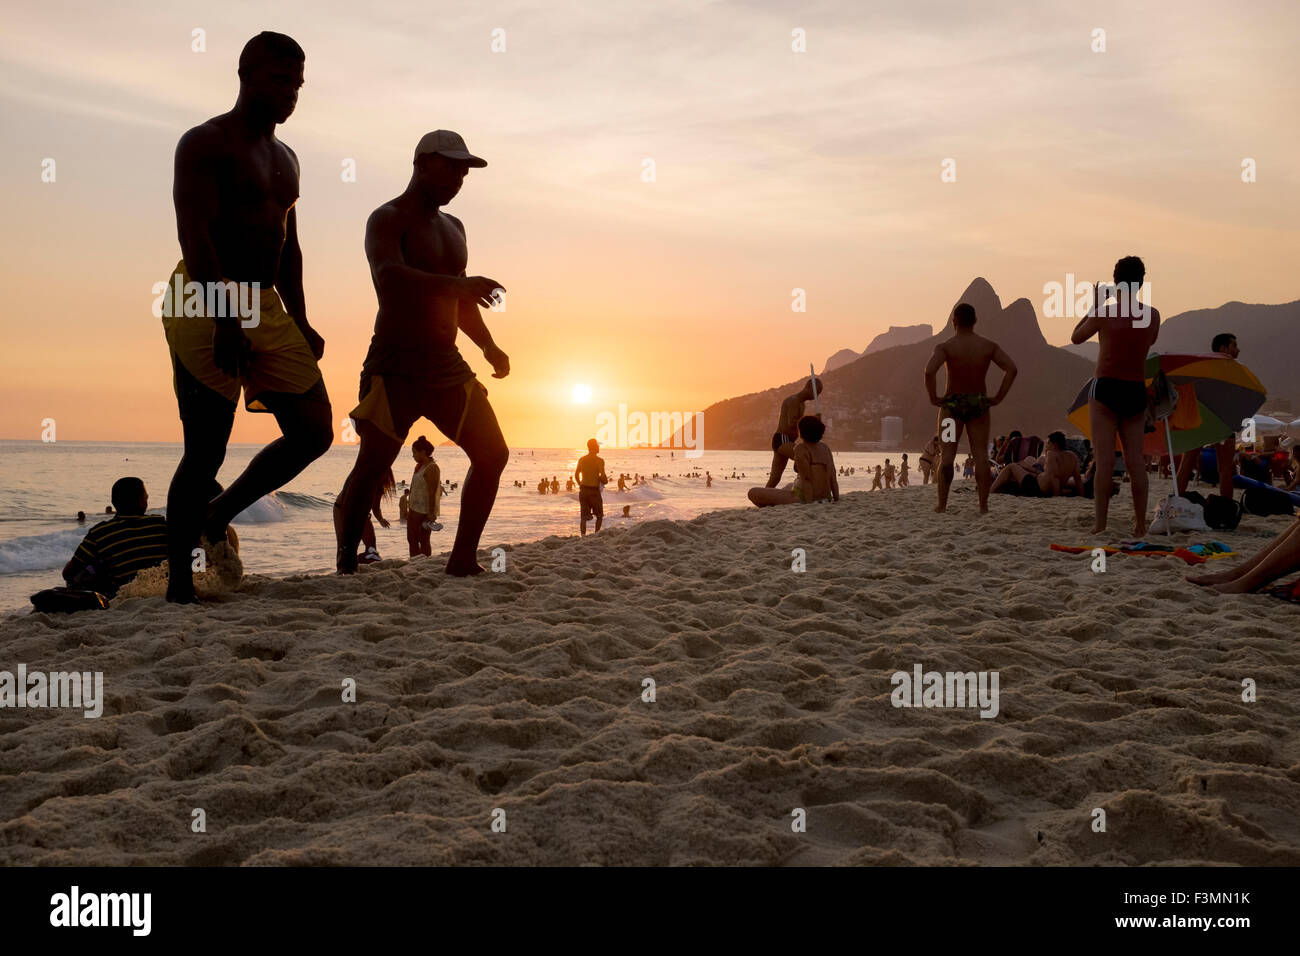 RIO DE JANEIRO, BRAZIL - FEBRUARY 21, 2014: Silhouettes of people walk along Ipanema Beach at sunset. - Stock Image